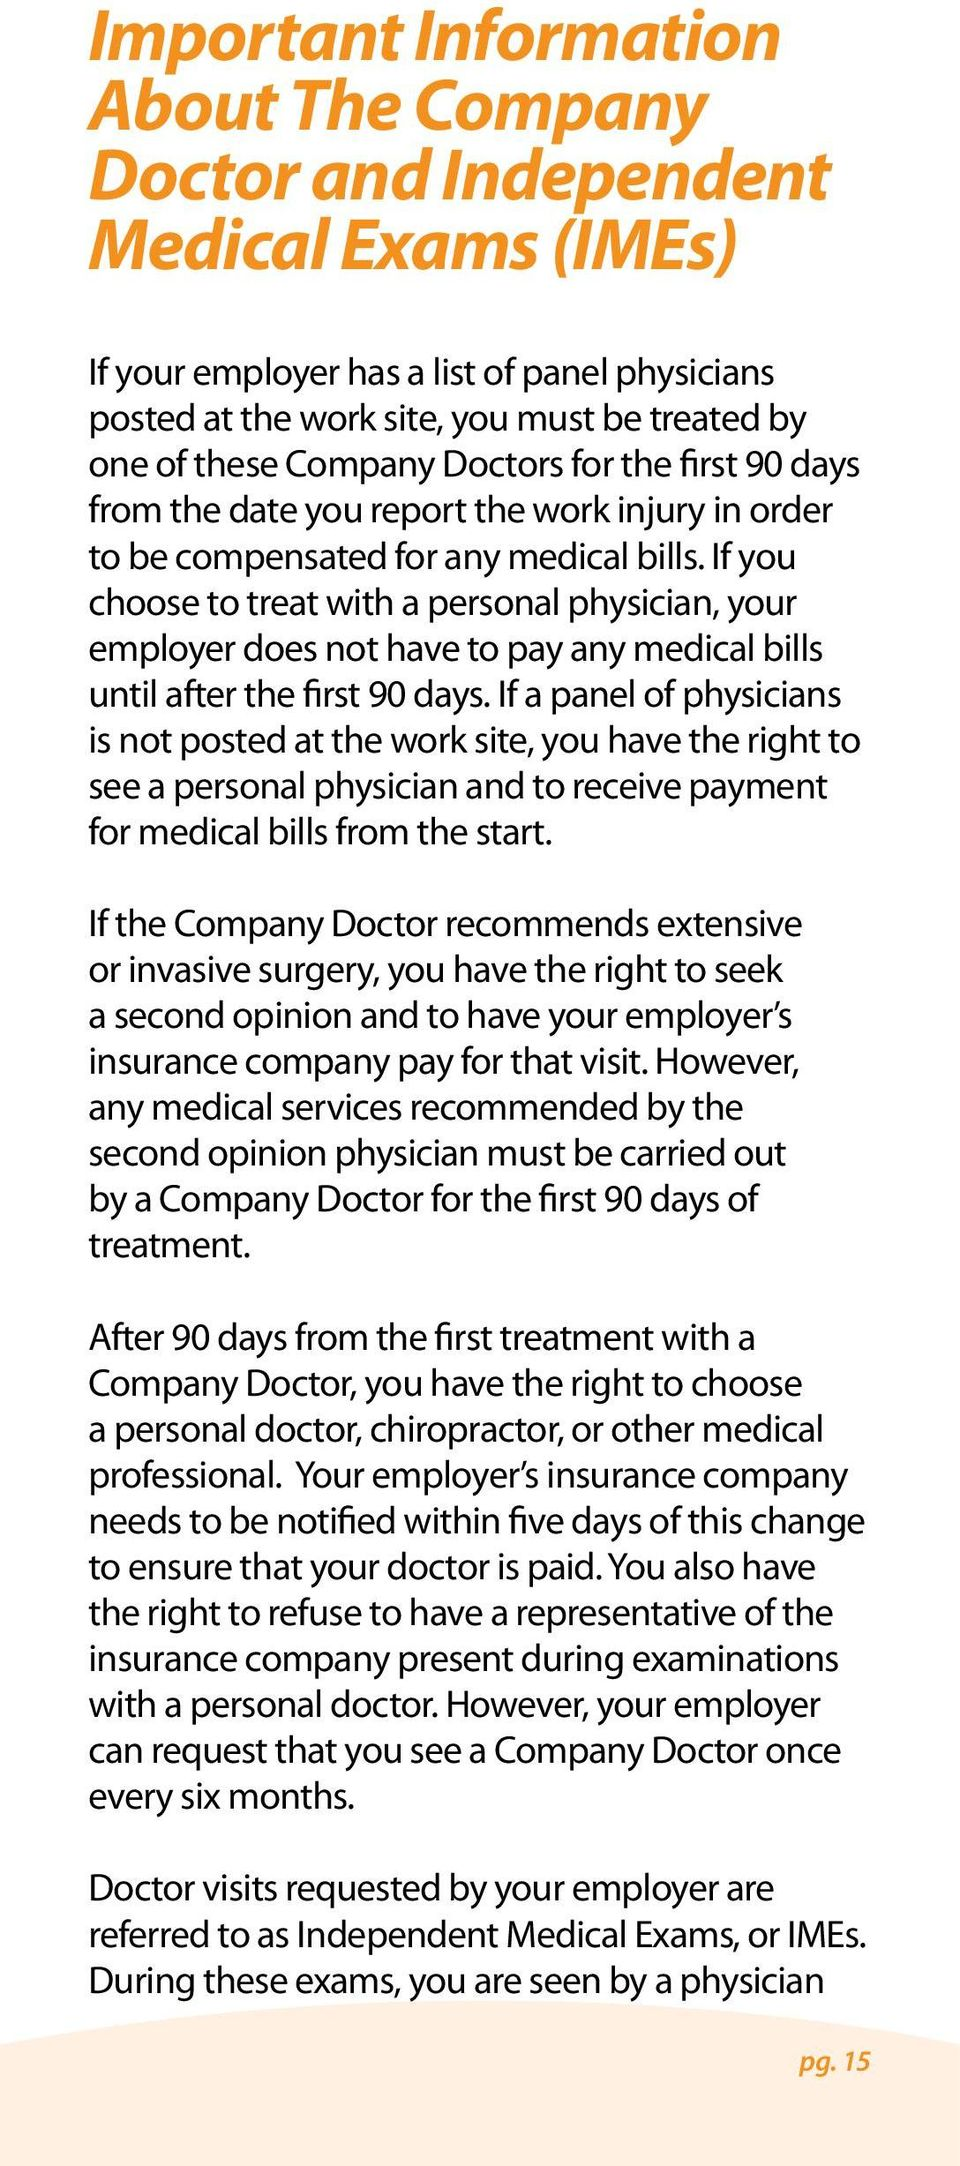 If you choose to treat with a personal physician, your employer does not have to pay any medical bills until after the first 90 days.